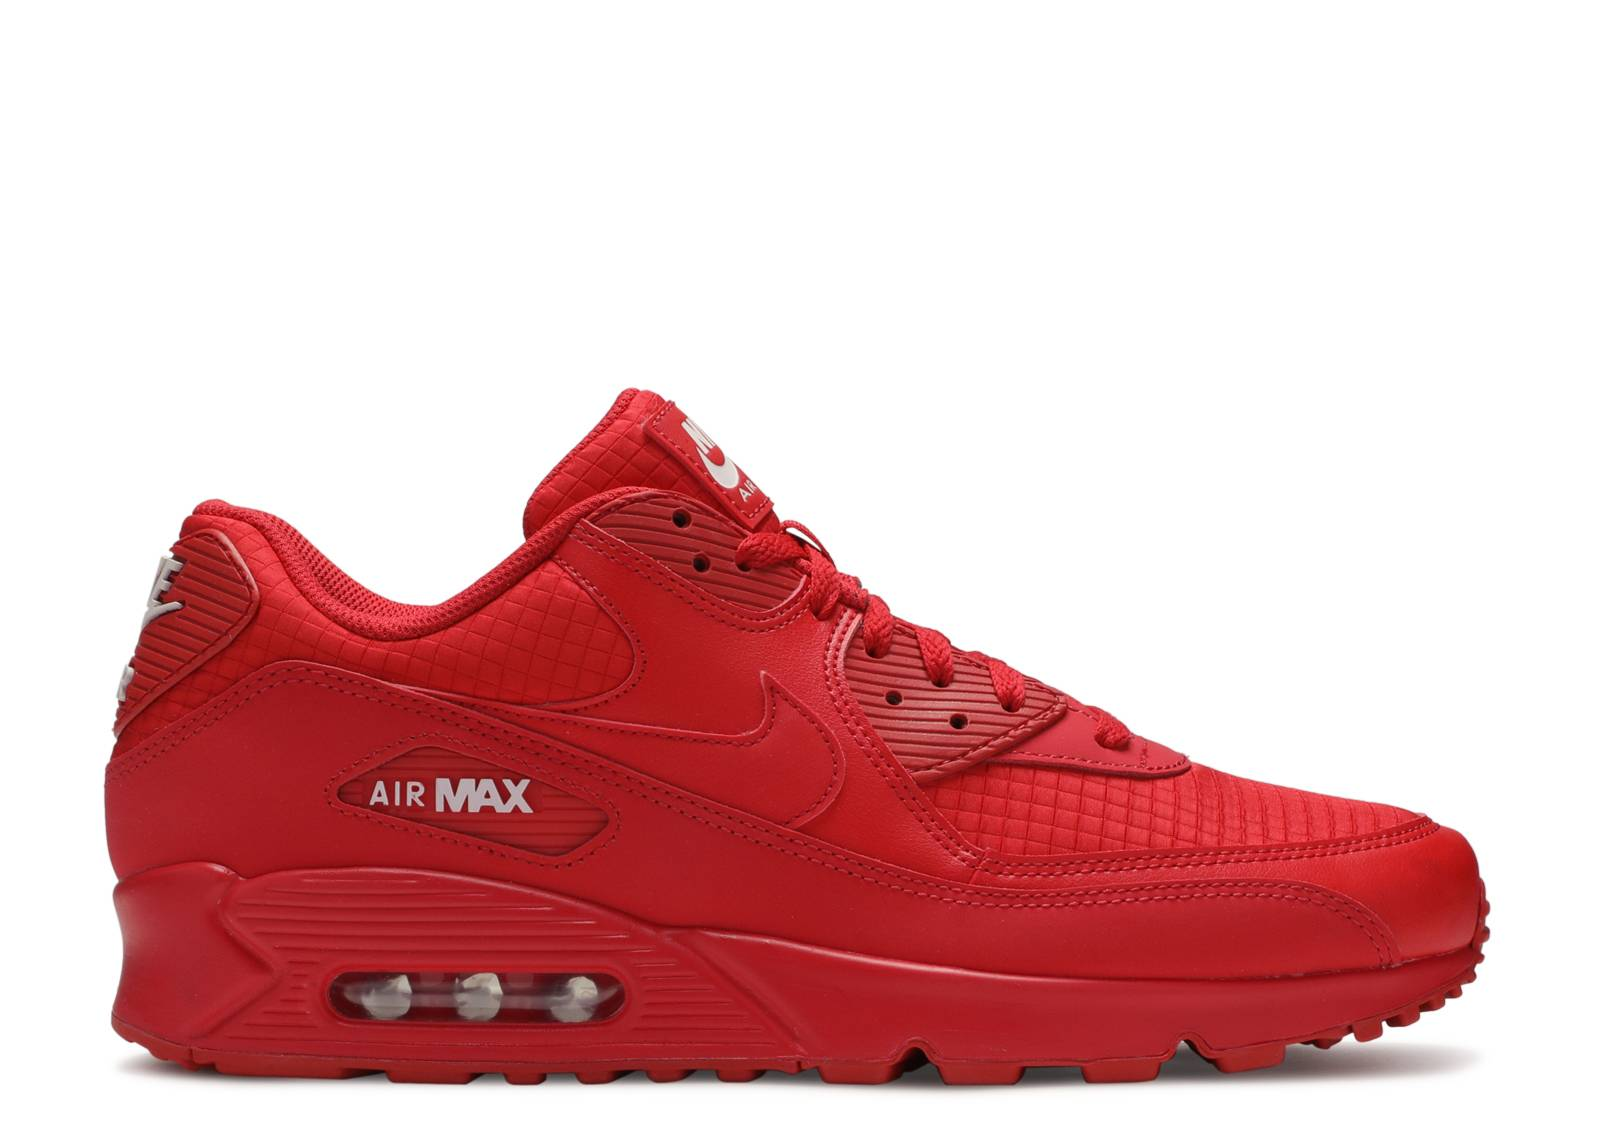 Nike Air Max Shoes | Flight Club